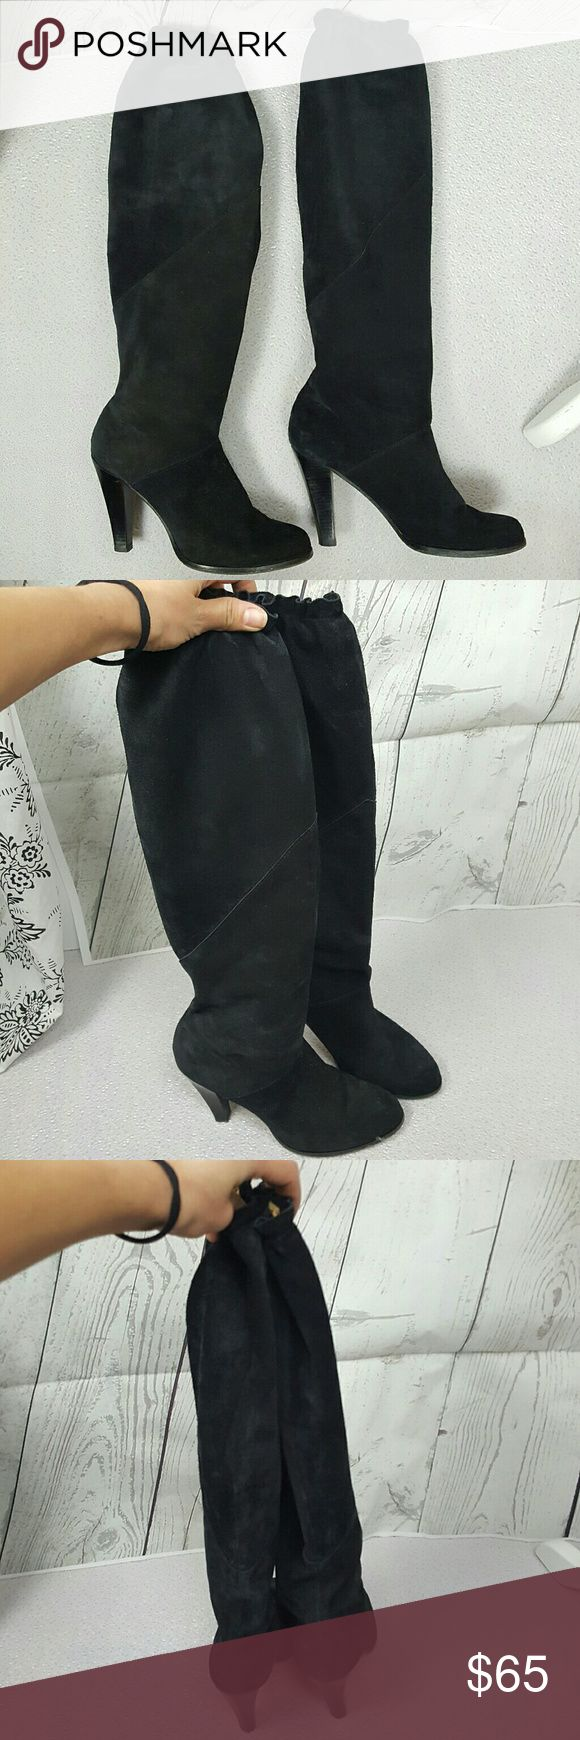 Michael Kors sexy over knee black suede boots US7  In good pre owned condition MICHAEL Michael Kors Shoes Over the Knee Boots